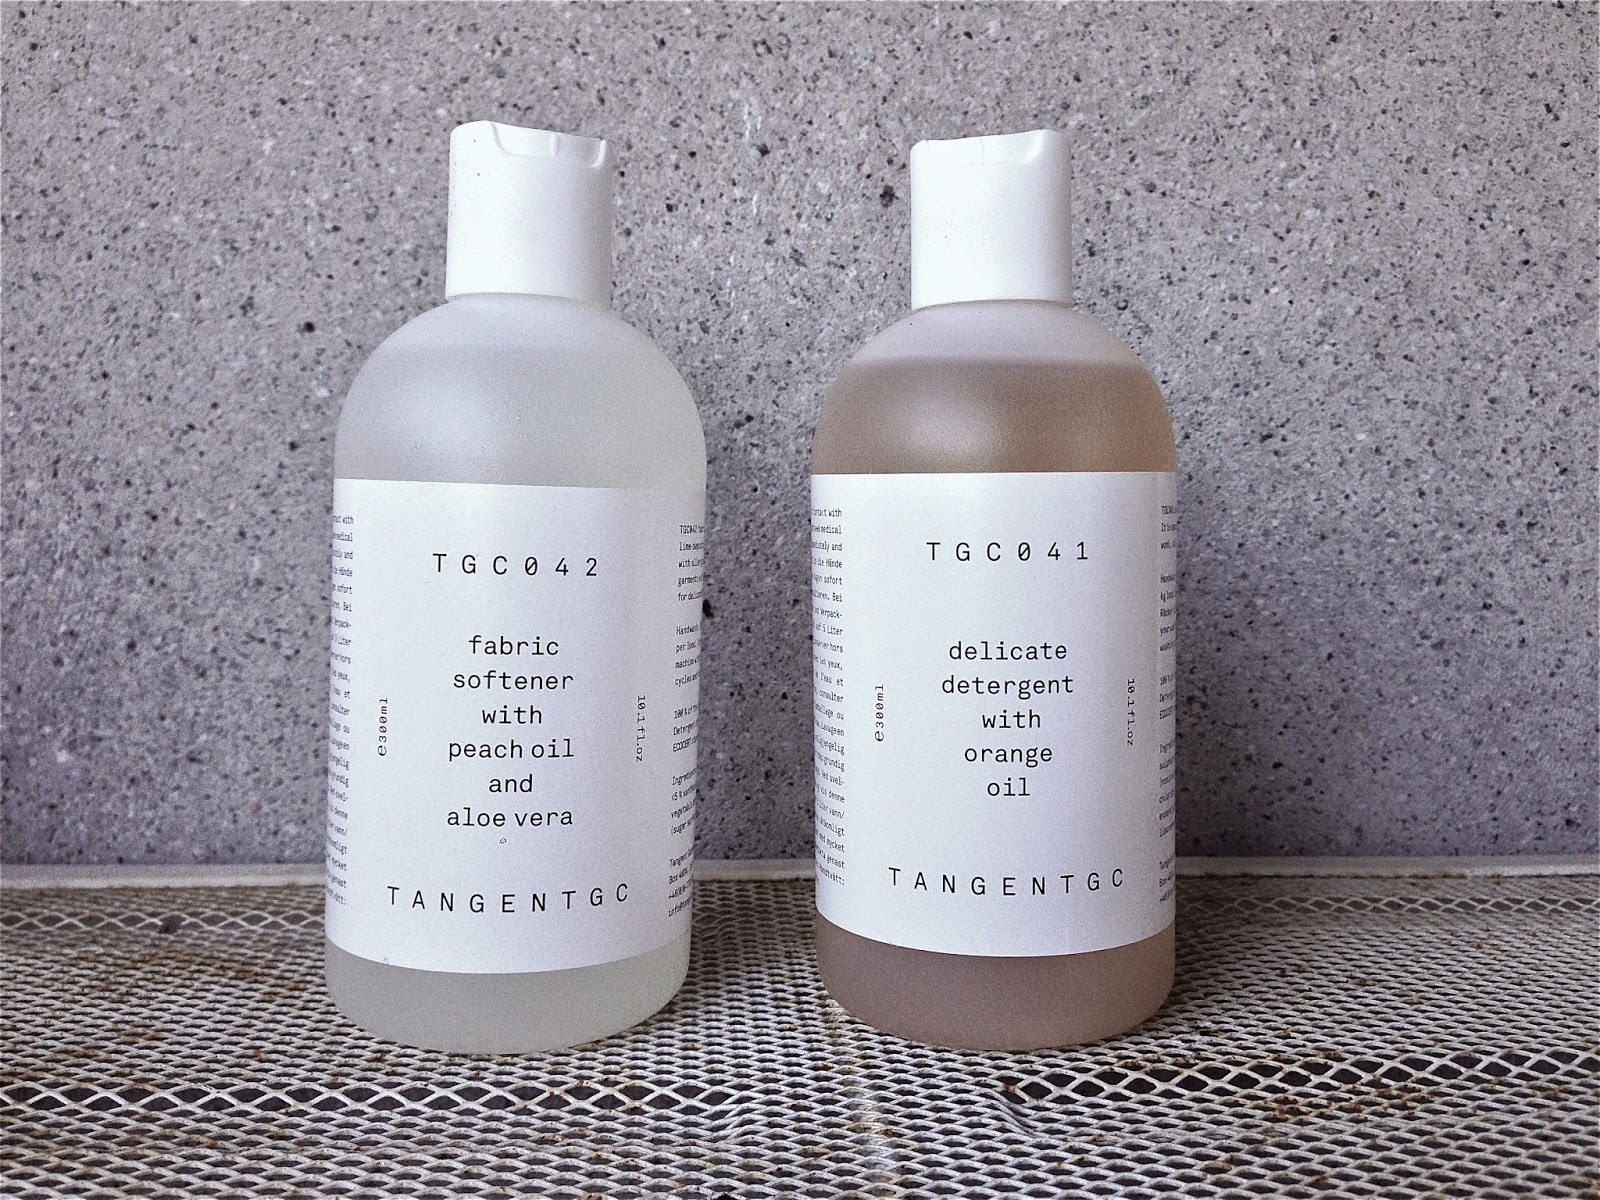 Tangentgc, eco wash, eco softener